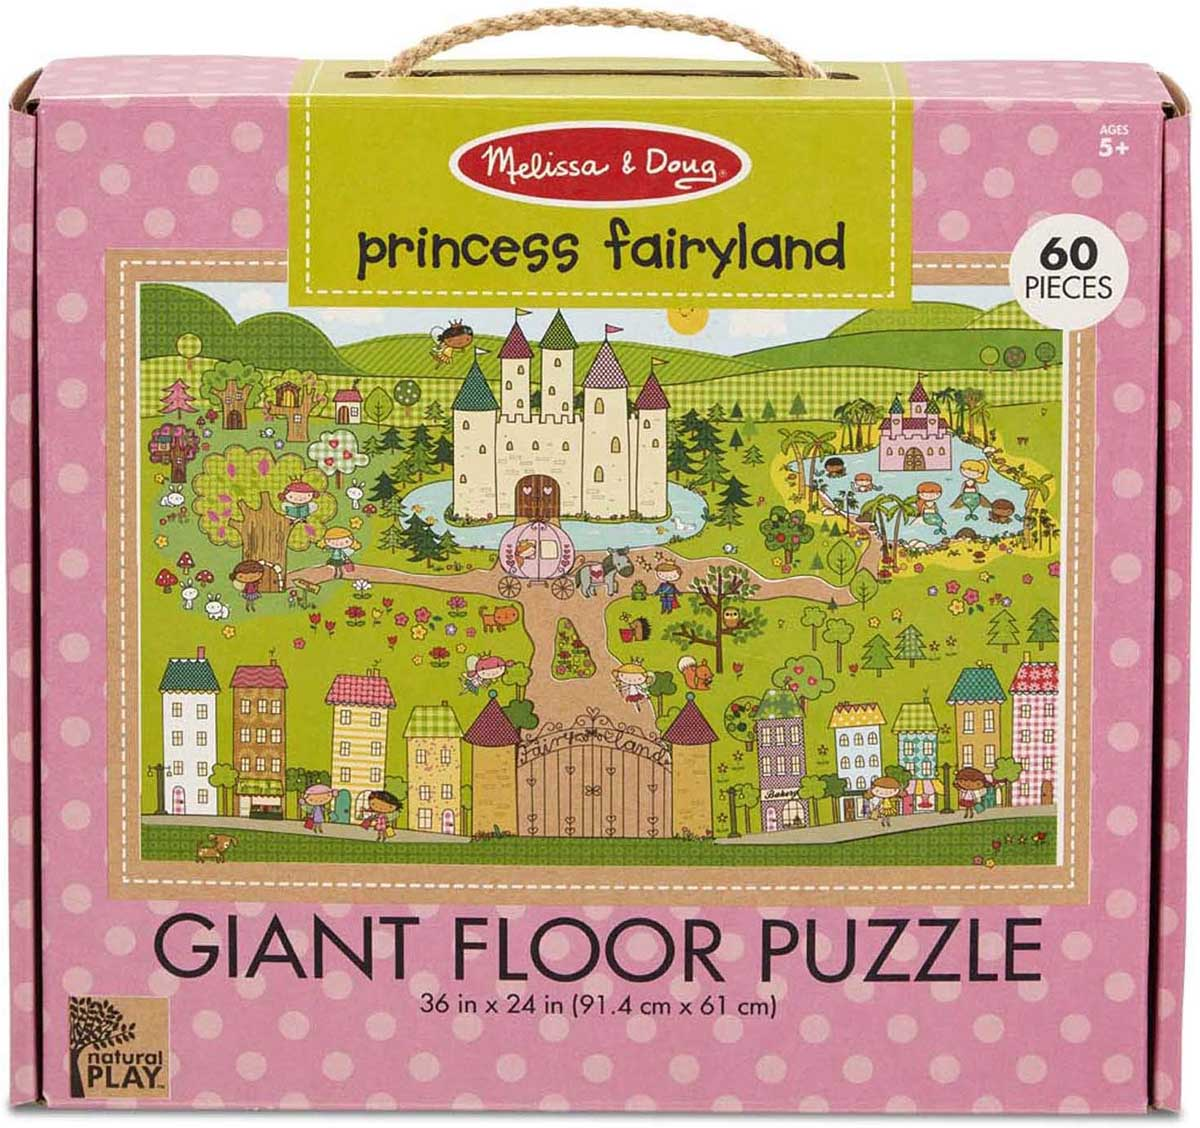 Green Start Giant Floor Puzzle - Princess Fairyland Castles Jigsaw Puzzle